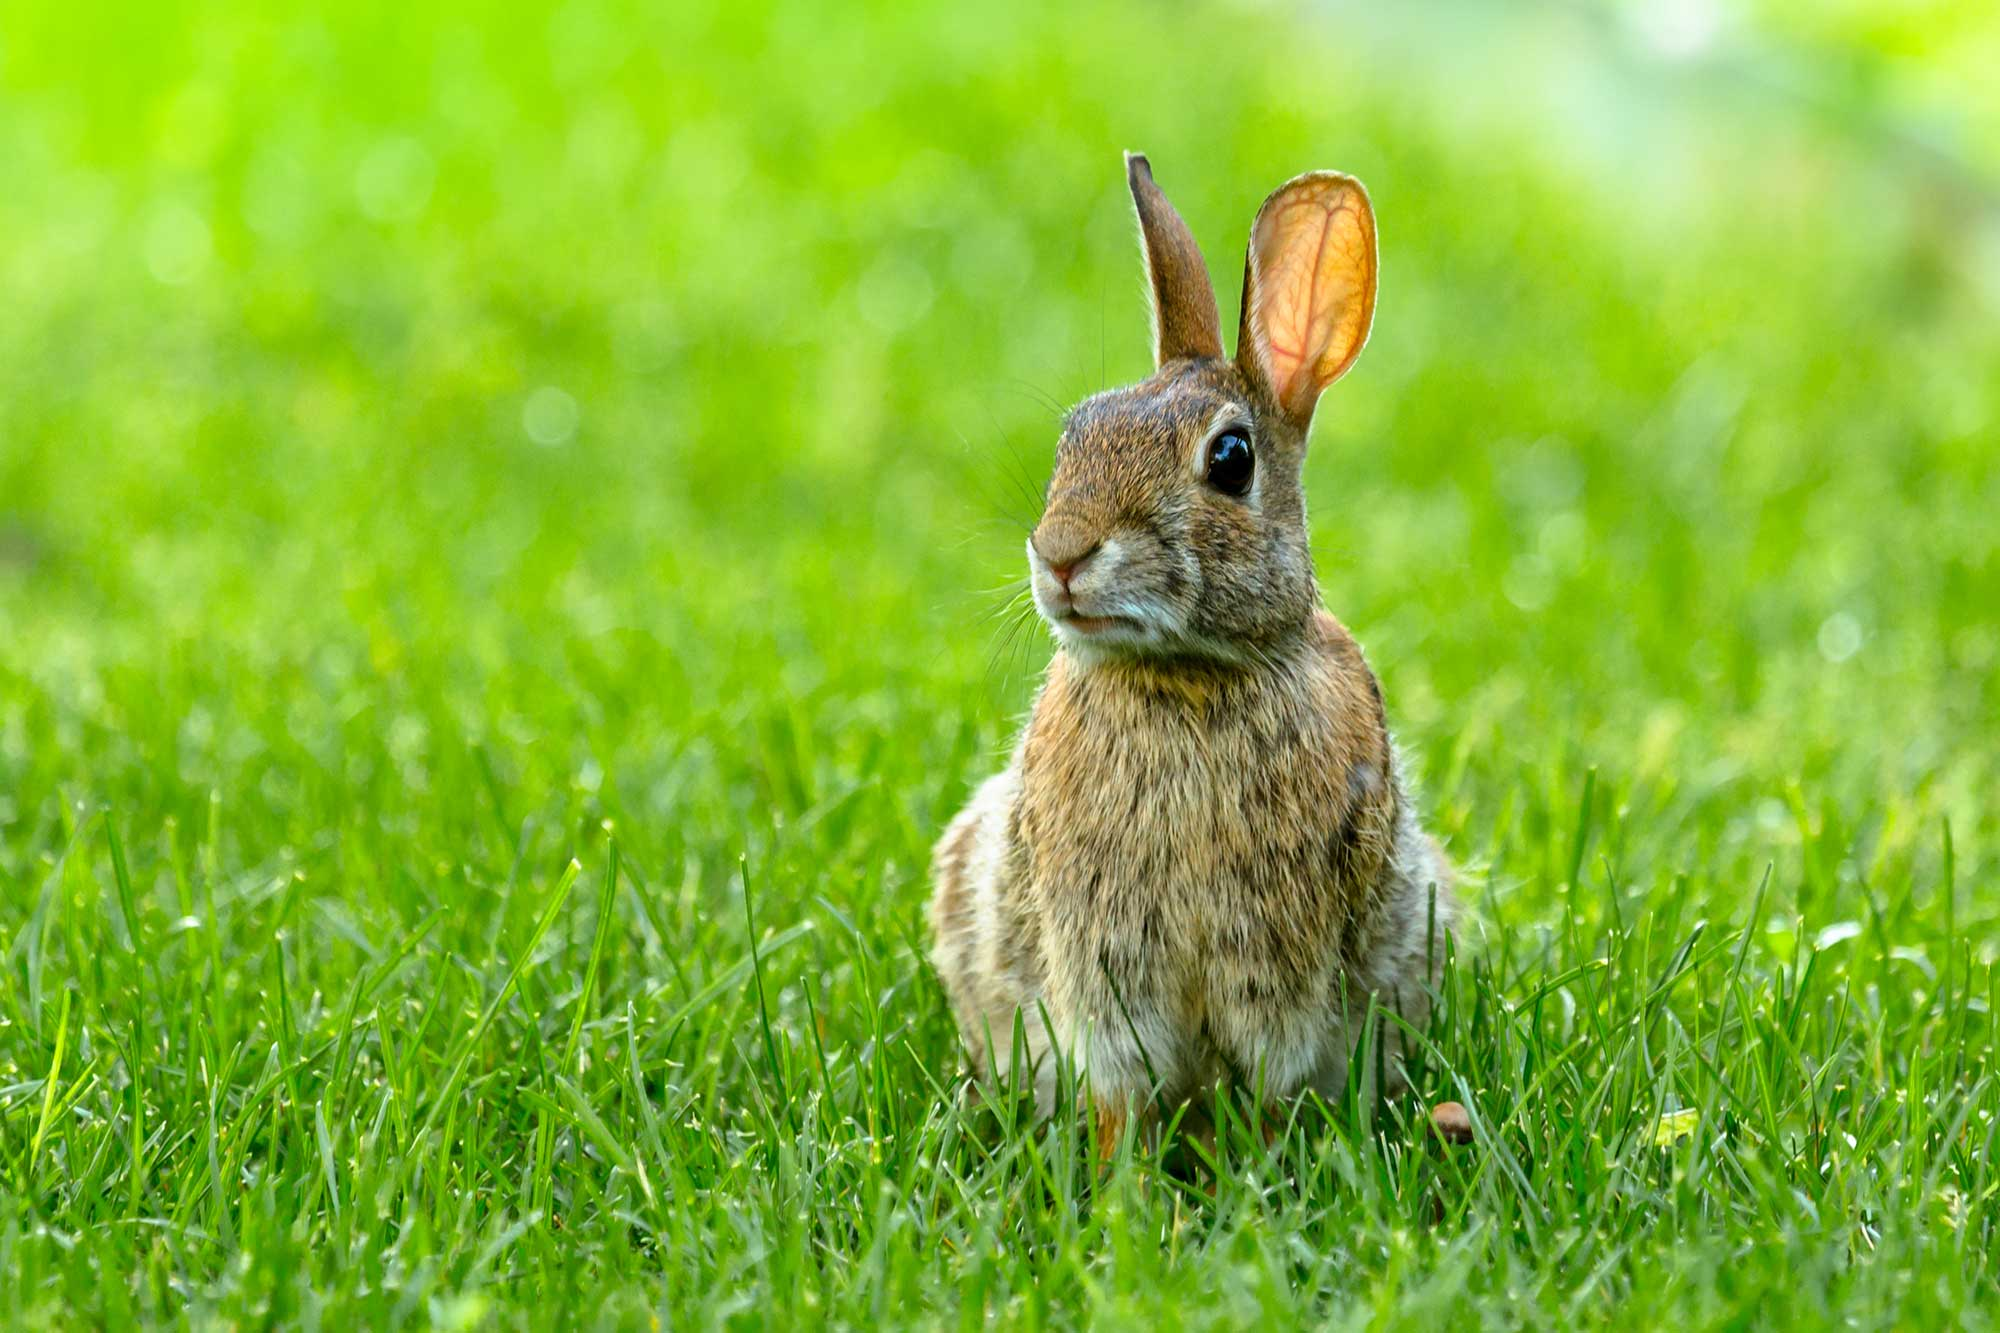 A rabbit sitting on green grass